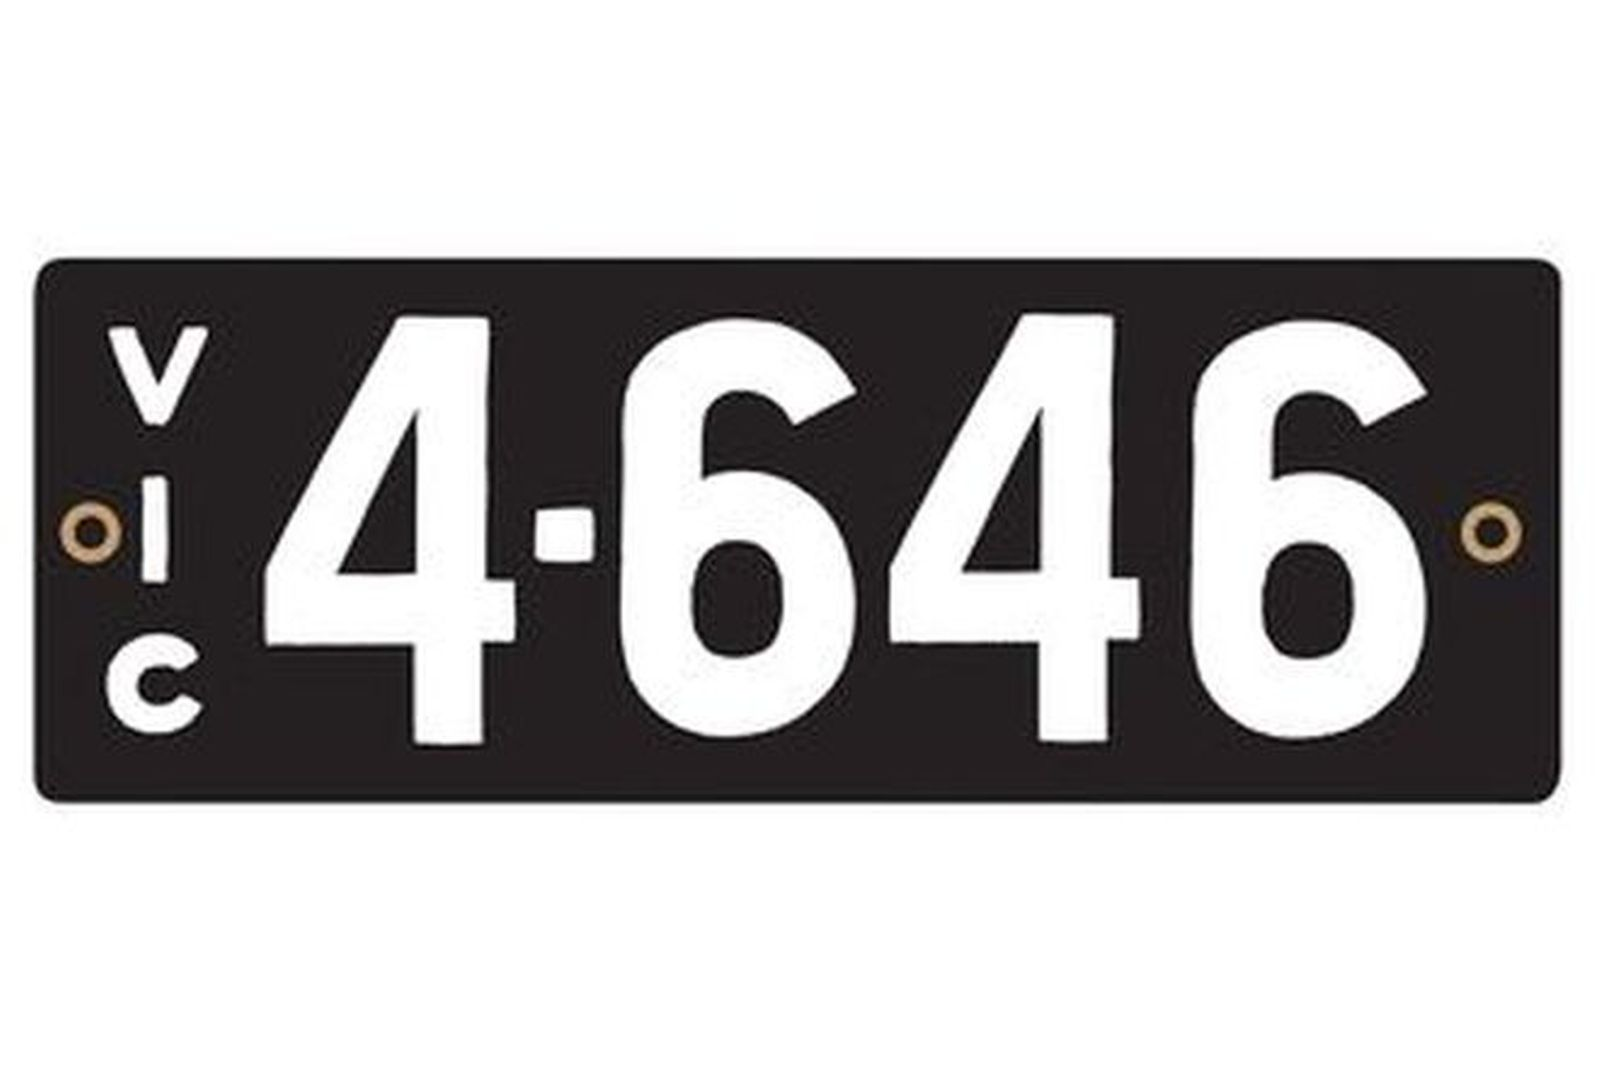 Number Plates - Victorian Heritage Numerical Number Plates '4-646'